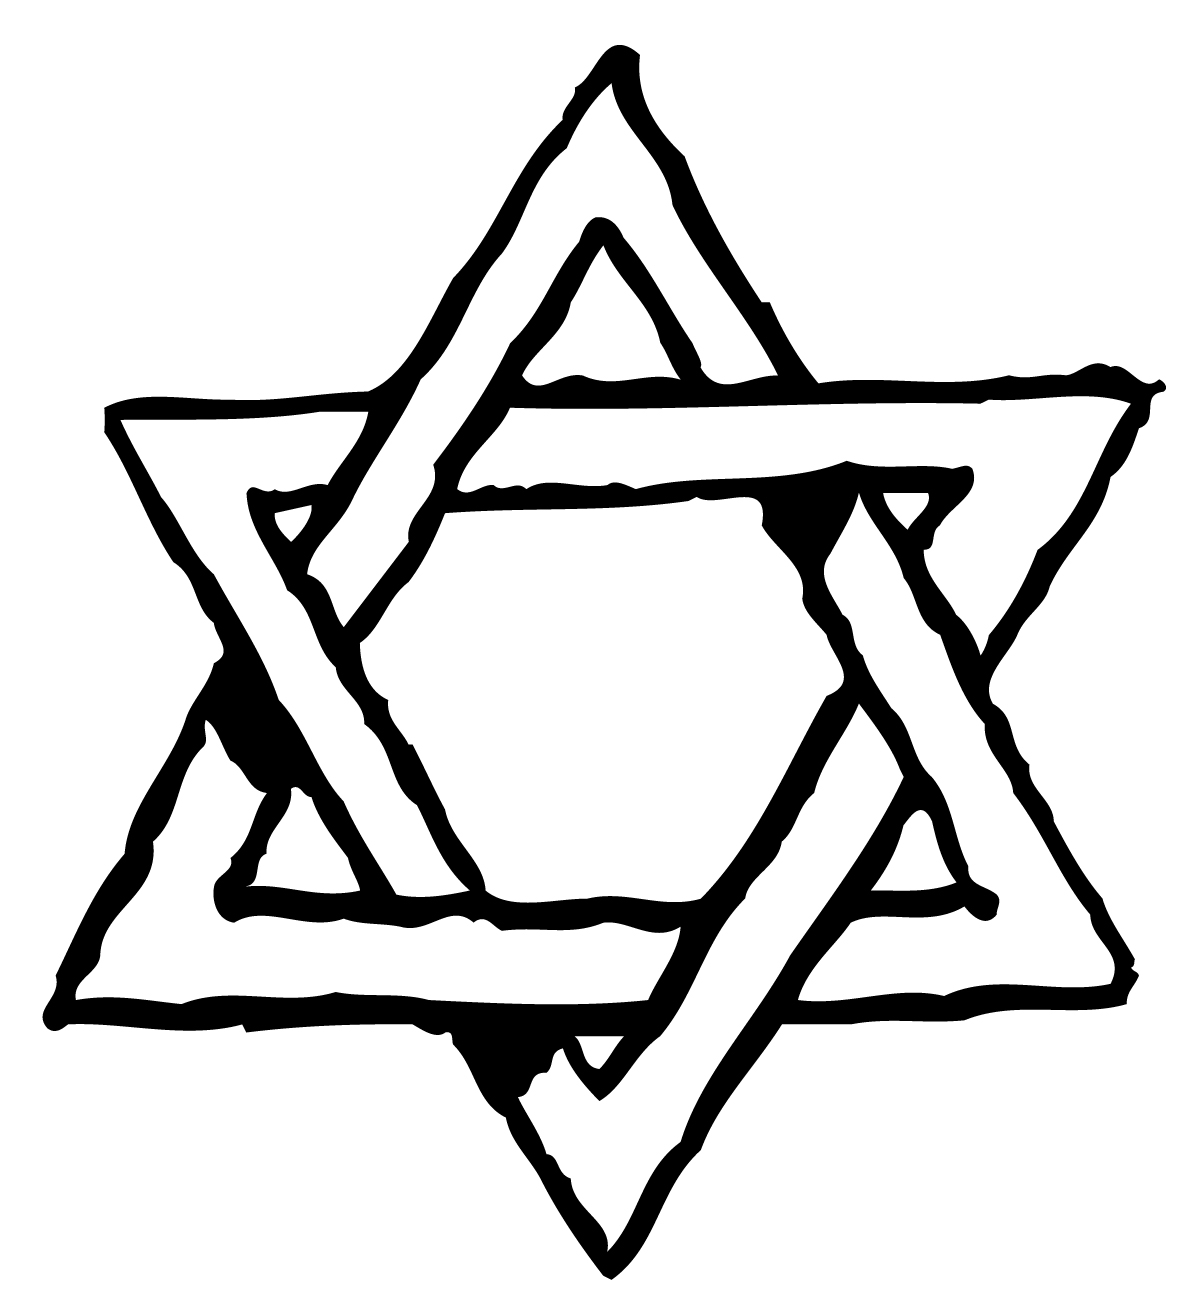 Star of david clipart free black and white image royalty free stock Free Pictures Of Star Of David, Download Free Clip Art, Free ... image royalty free stock